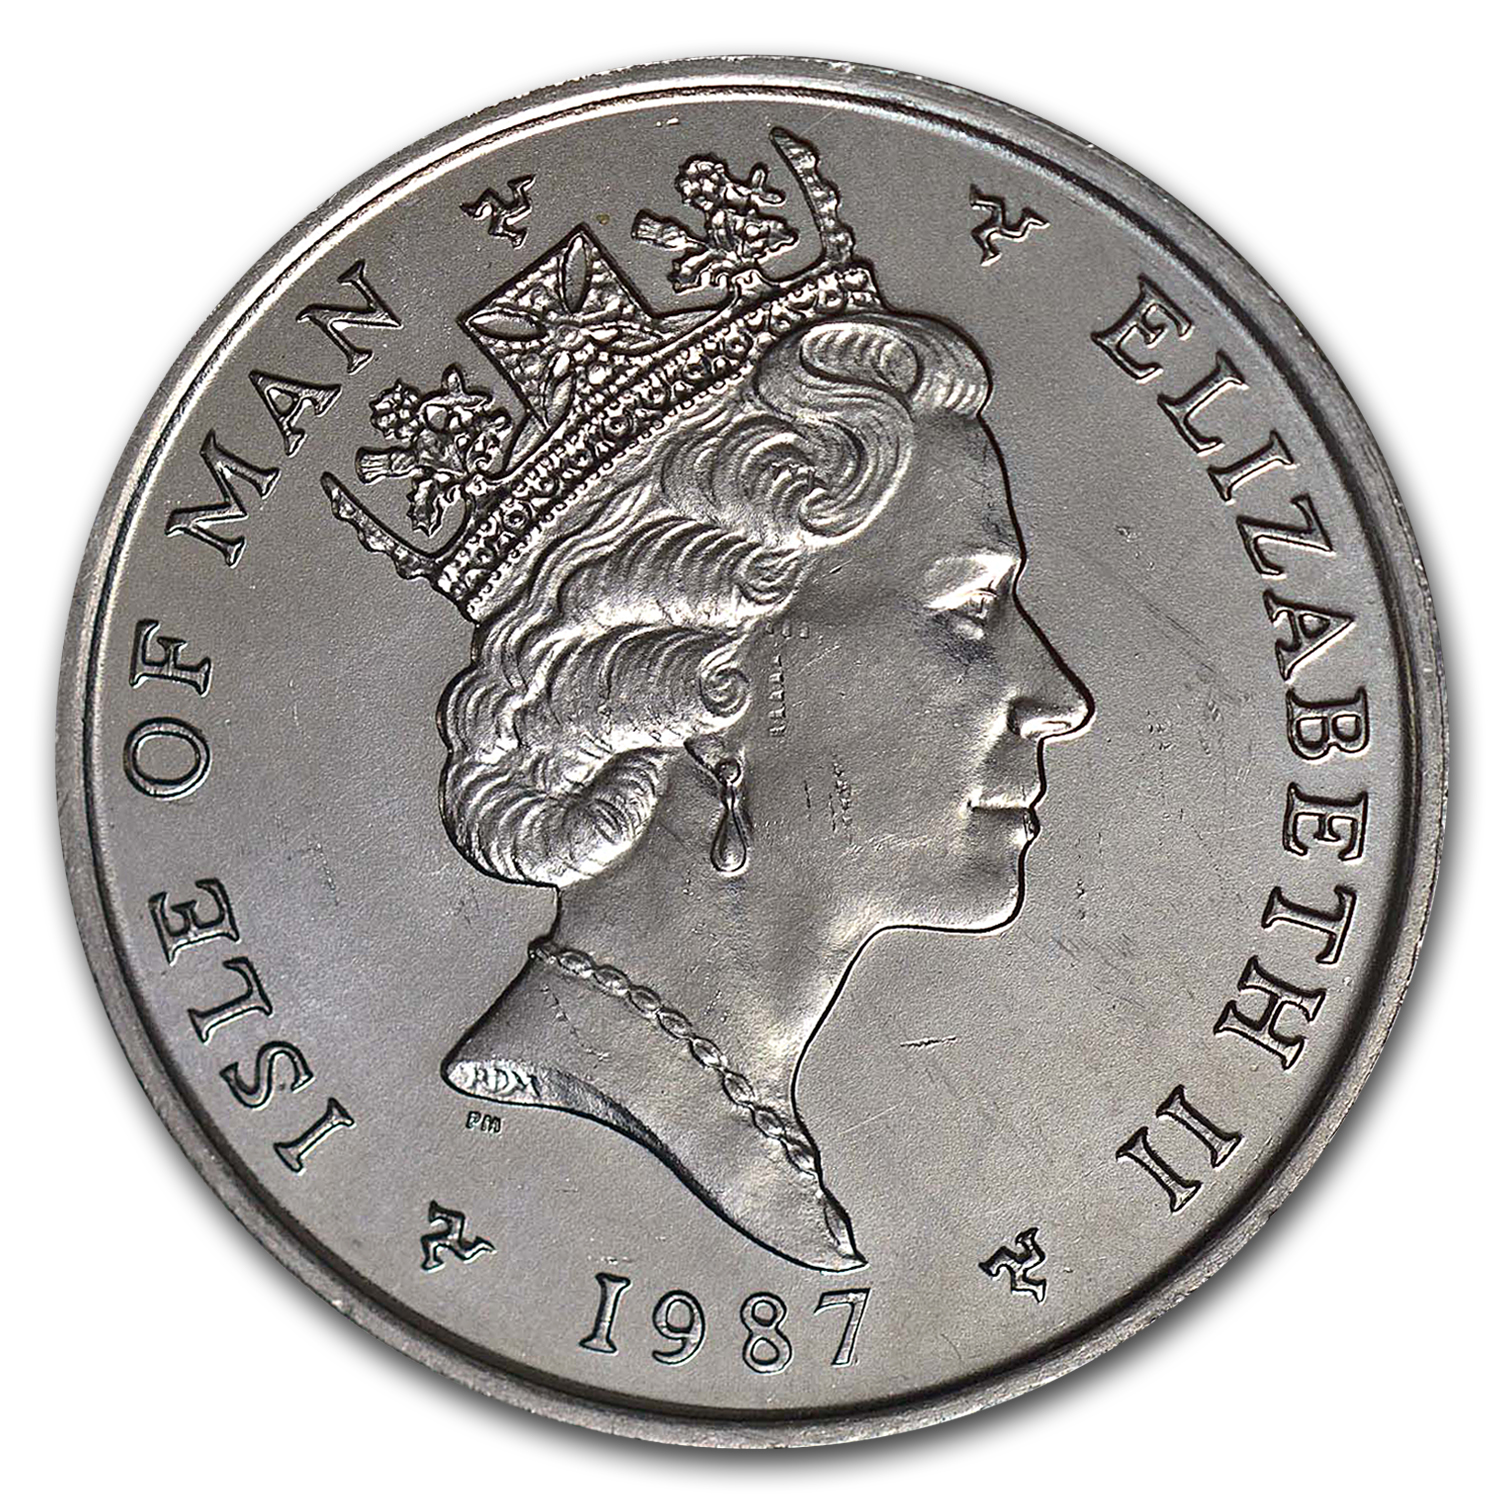 1987 Isle of Man 1 oz Platinum Noble BU